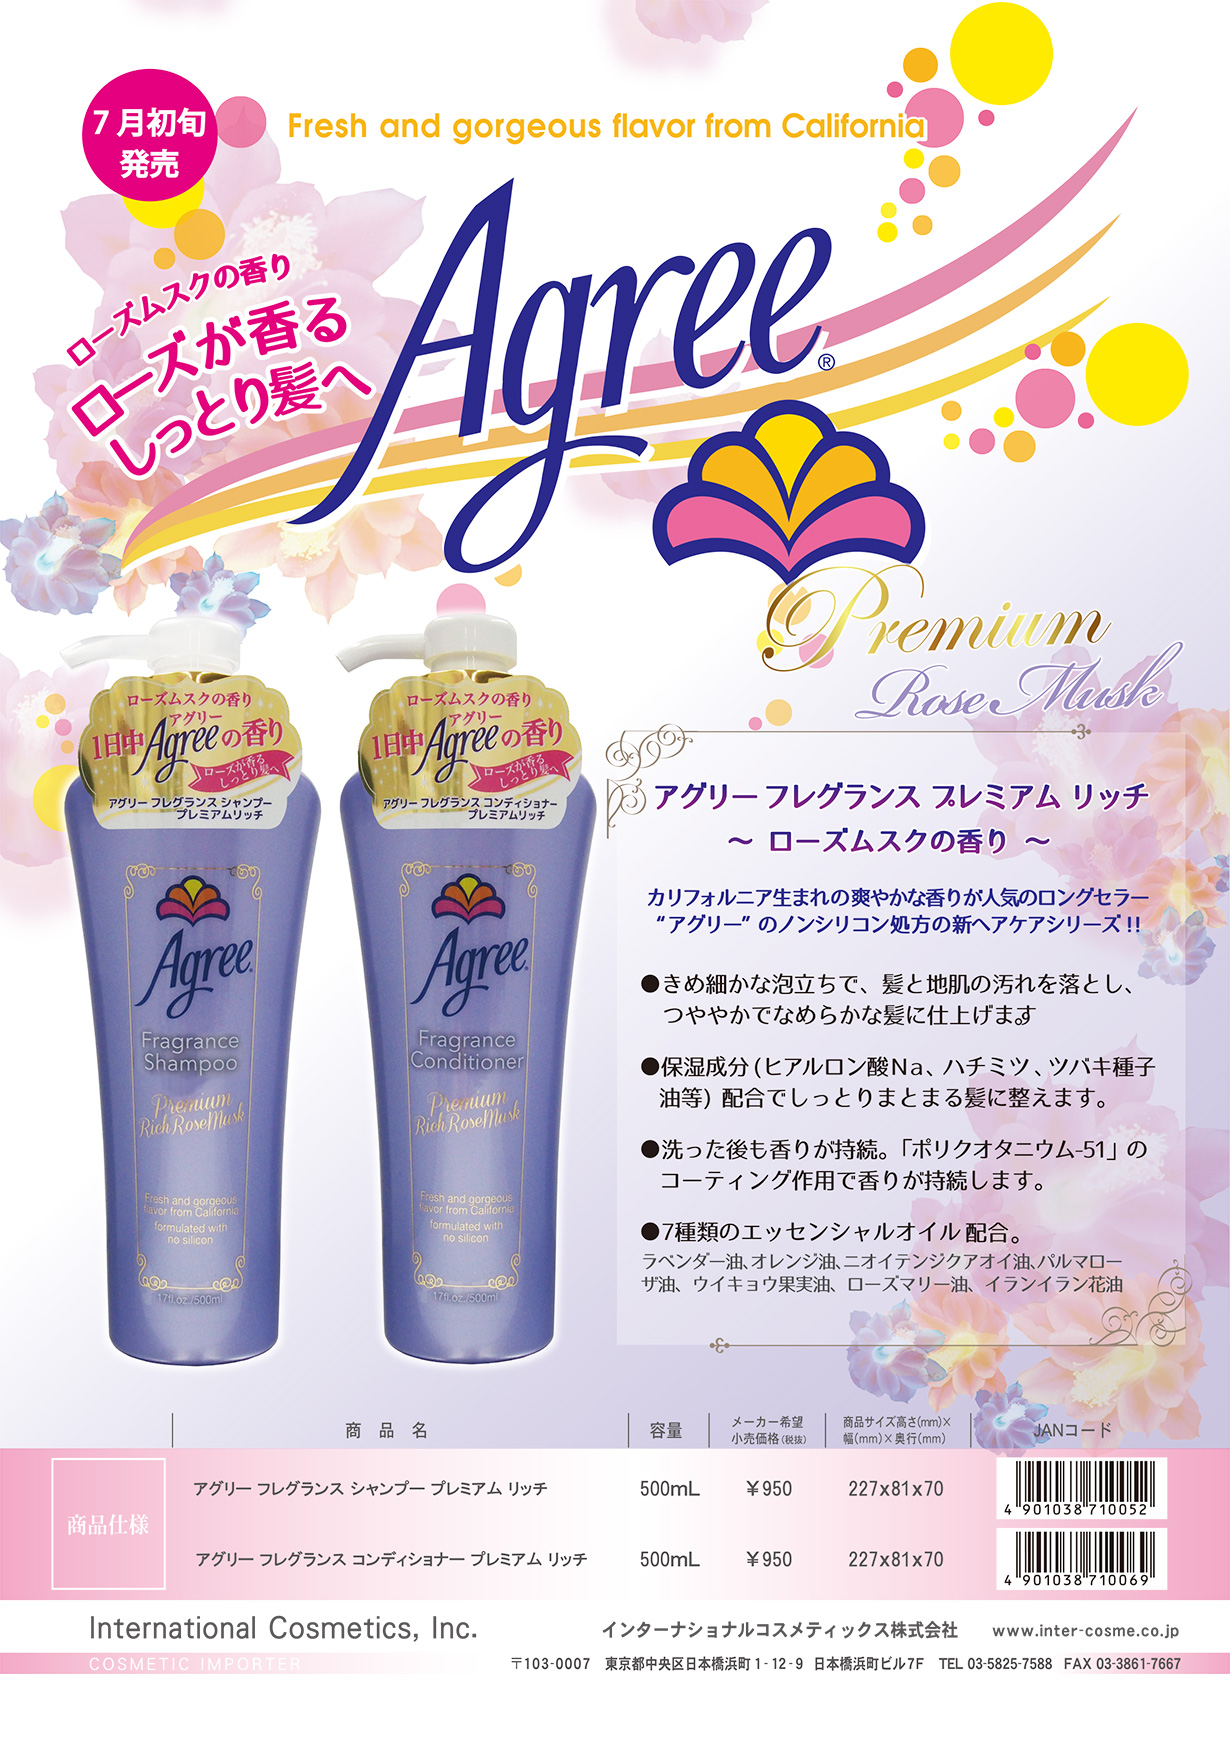 Agree Fragrance Premium Rich Rose Musk catalog (Japanese)